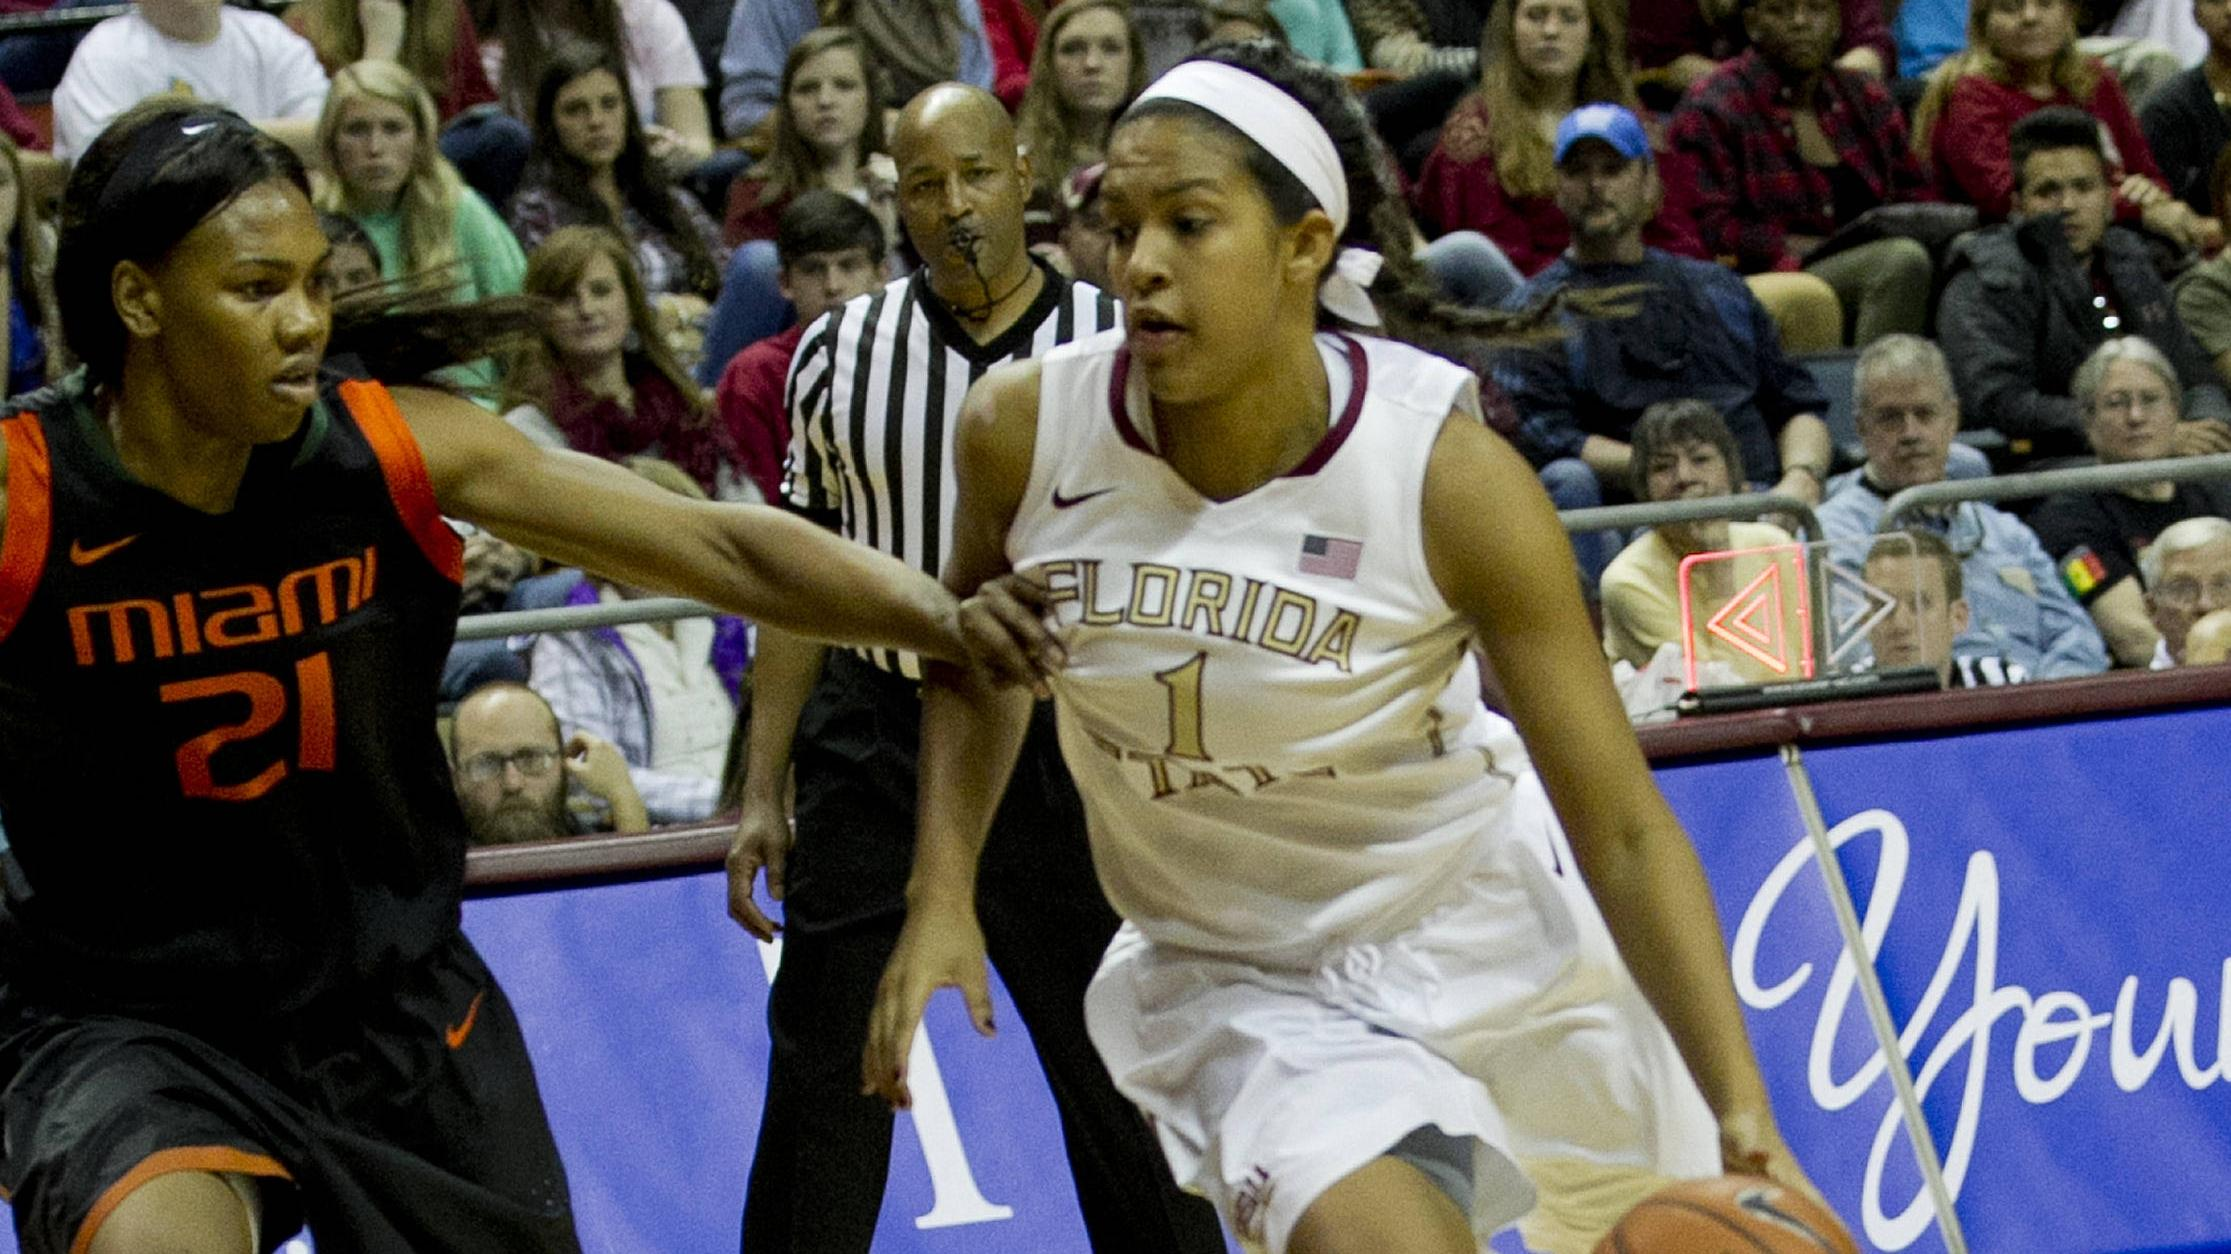 Morgan Jones (1) starting her drive from the top of the key, FSU vs Miami, 2-16-14, (Photo's by Steve Musco)